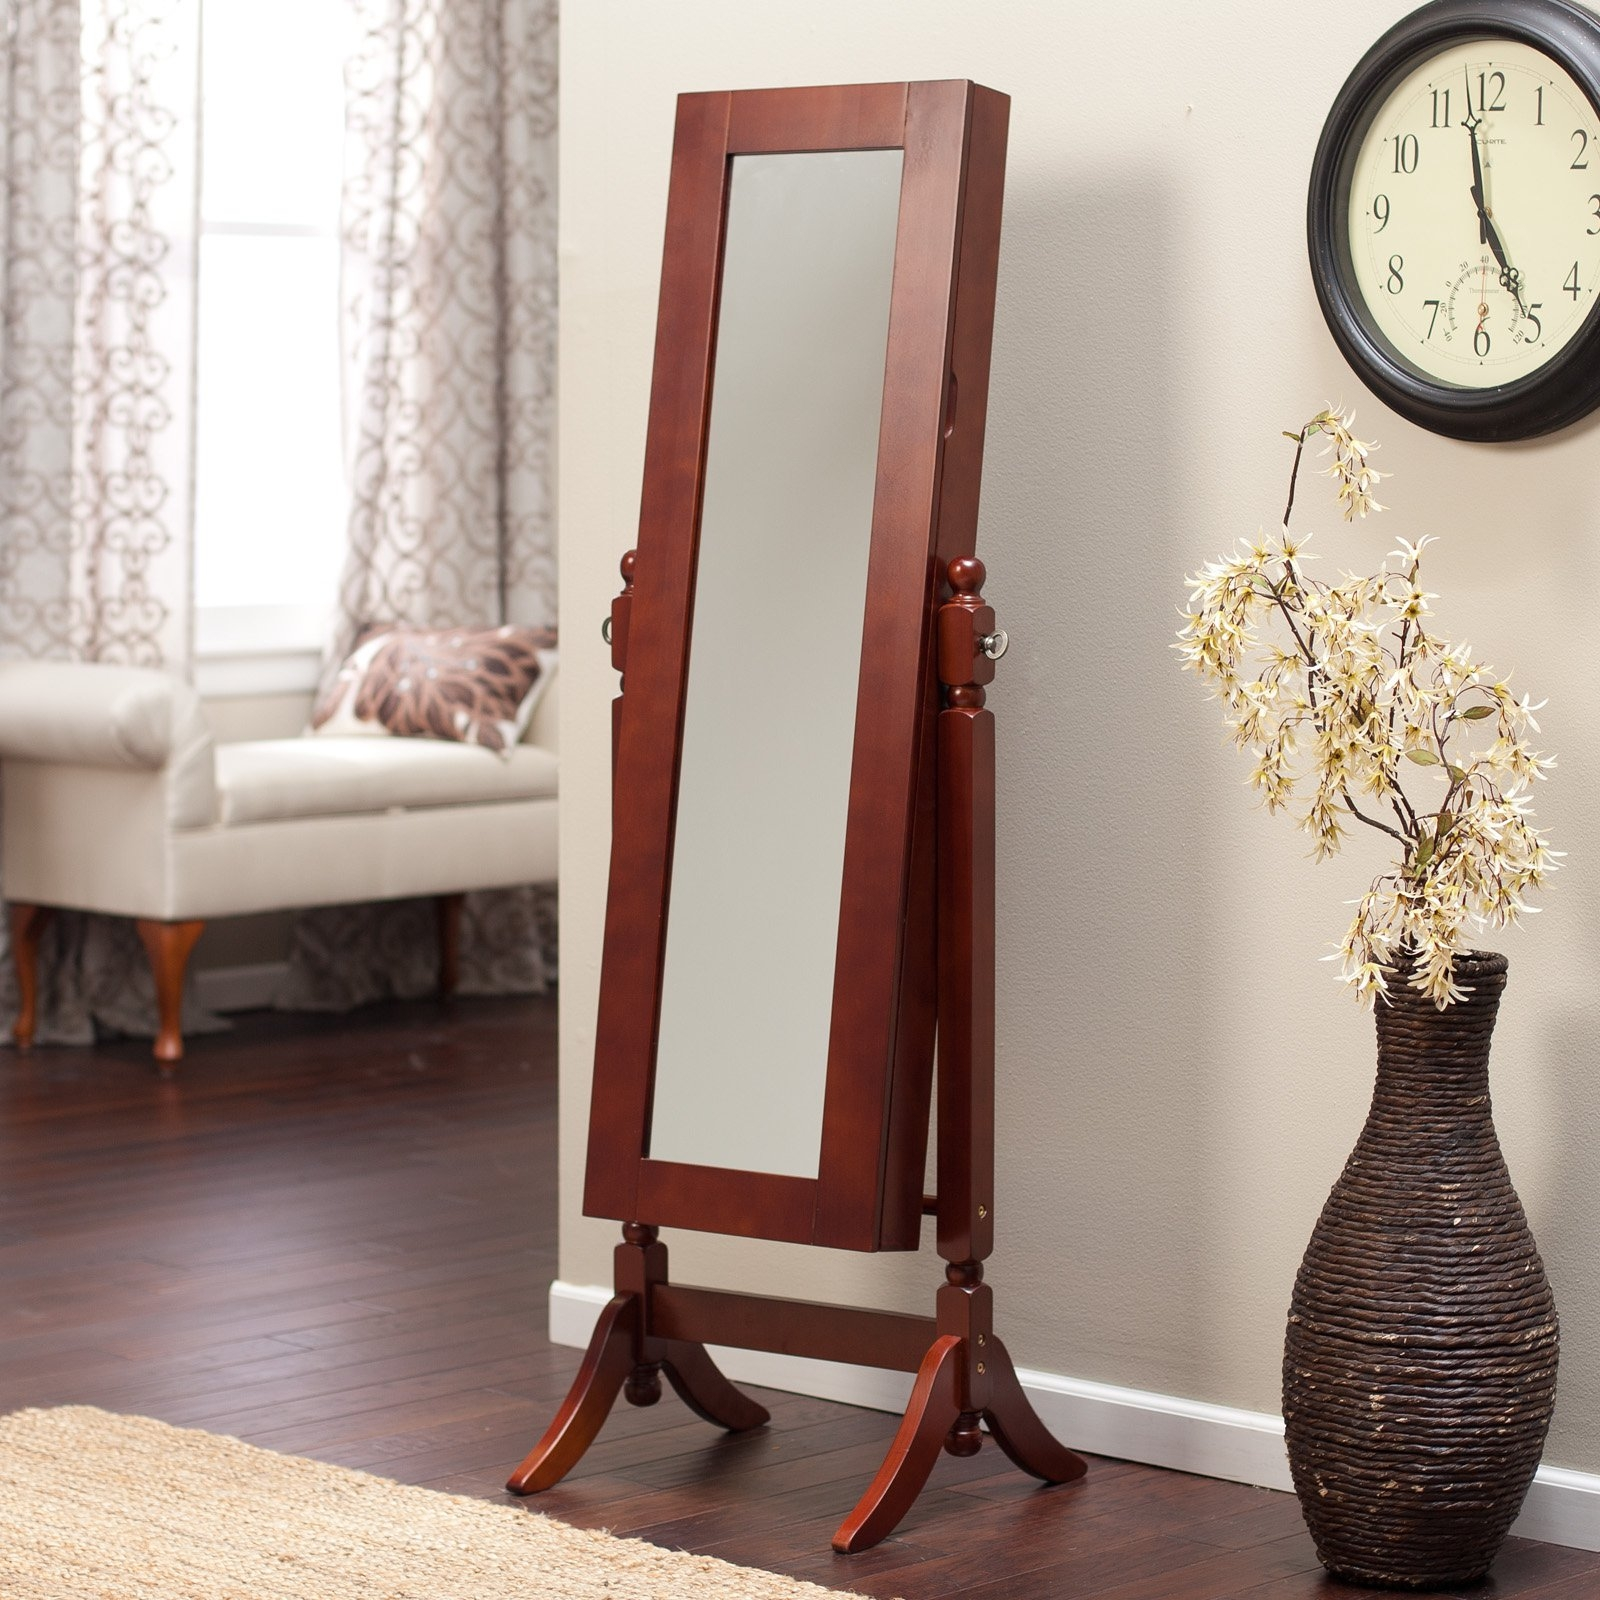 Bedroom Furniture Free Standing Mirror Wood Framed Mirrors In Full Length Free Standing Mirror With Drawer (Image 5 of 15)